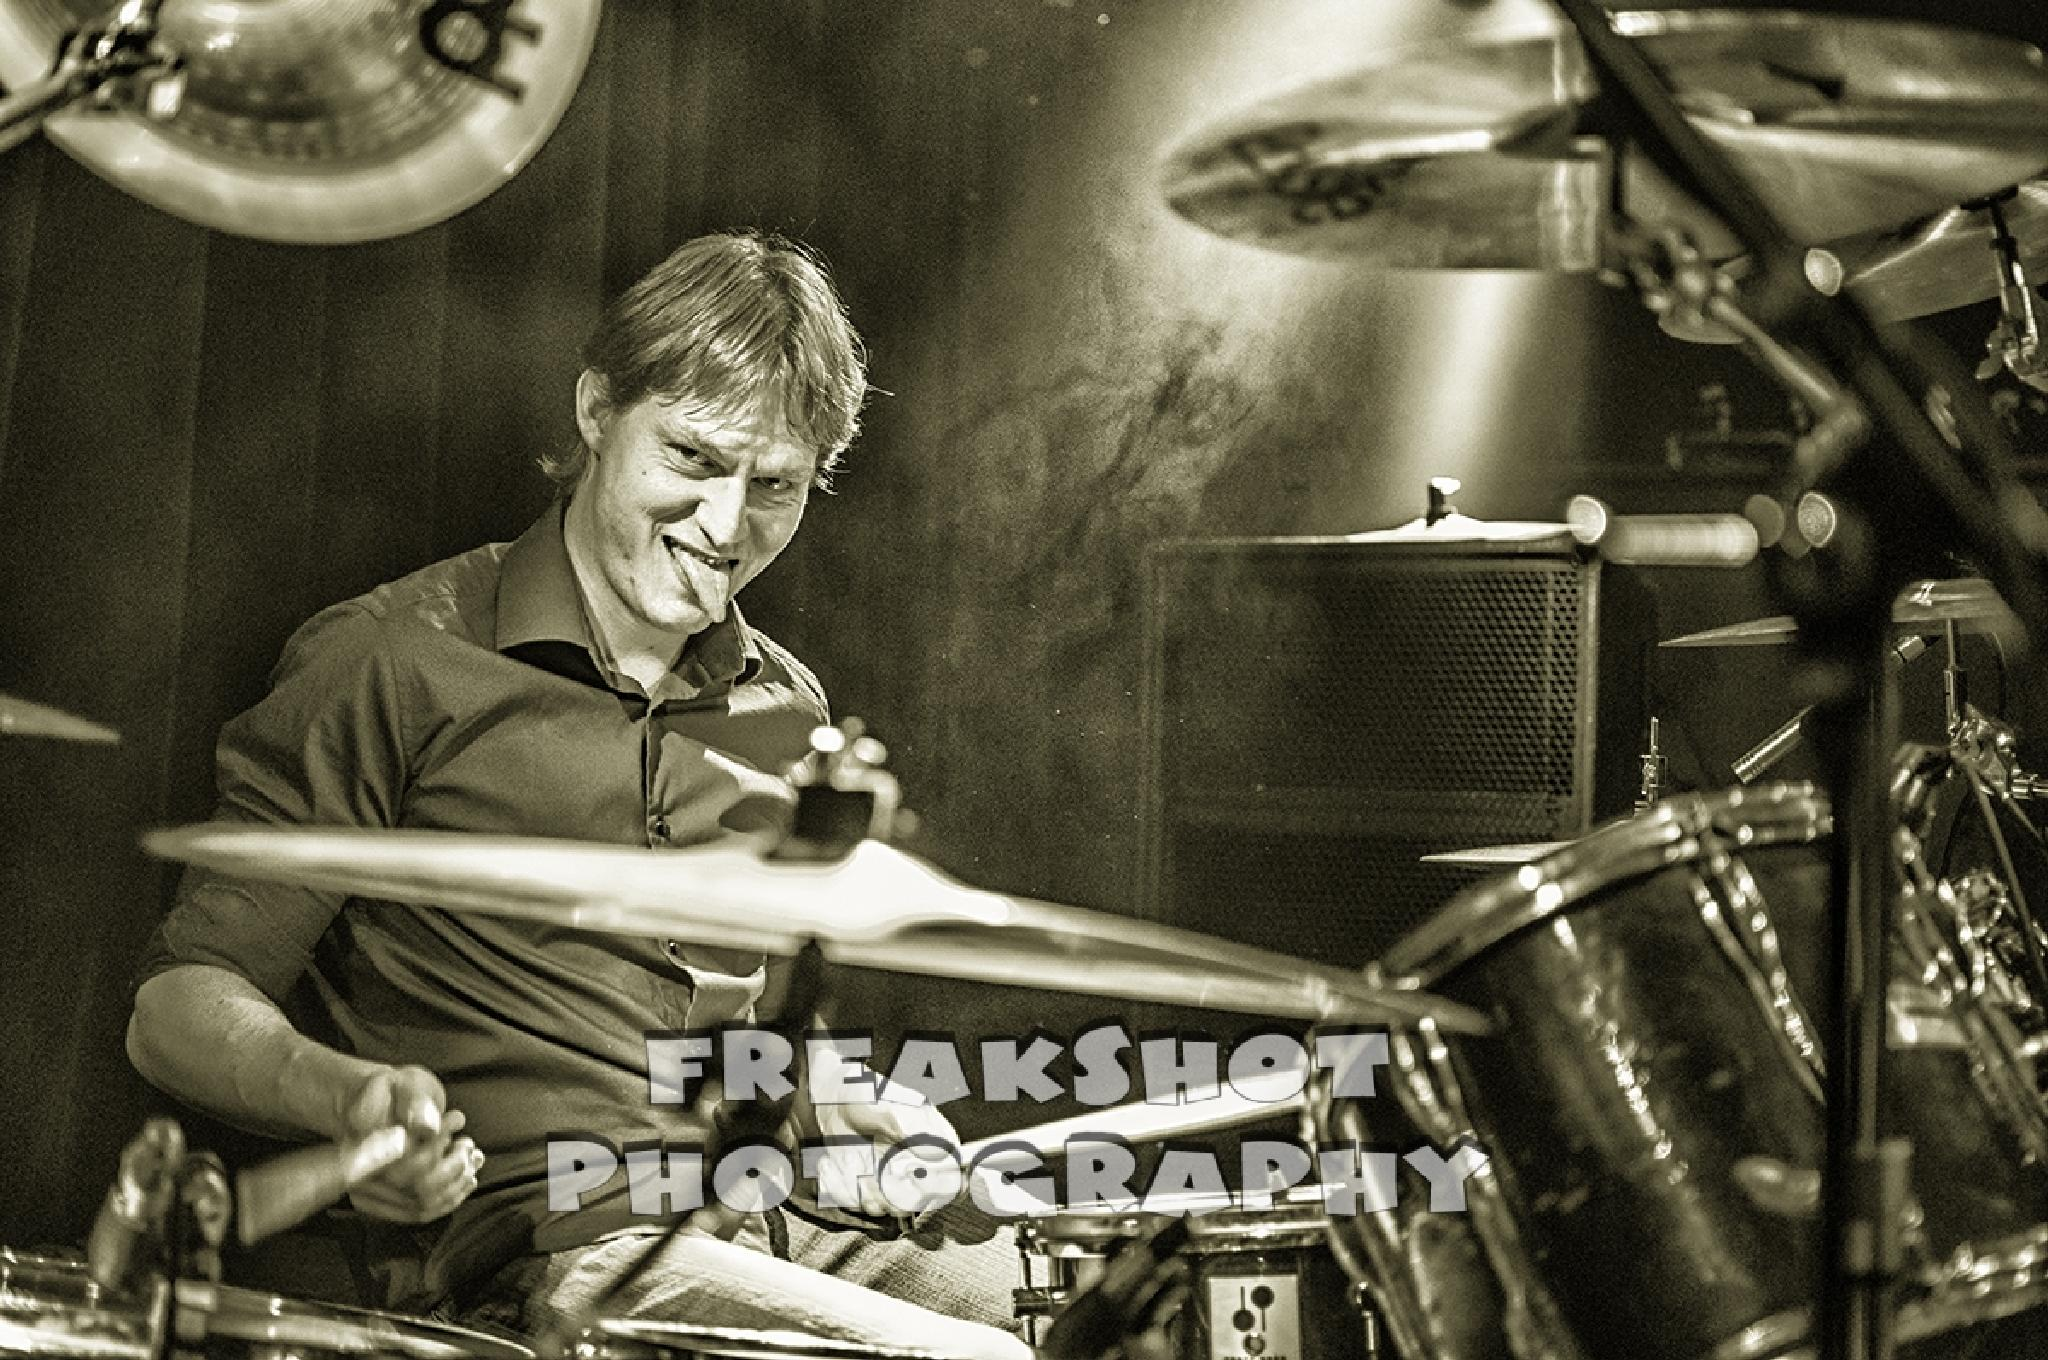 Drummer by FreakshotPhotography